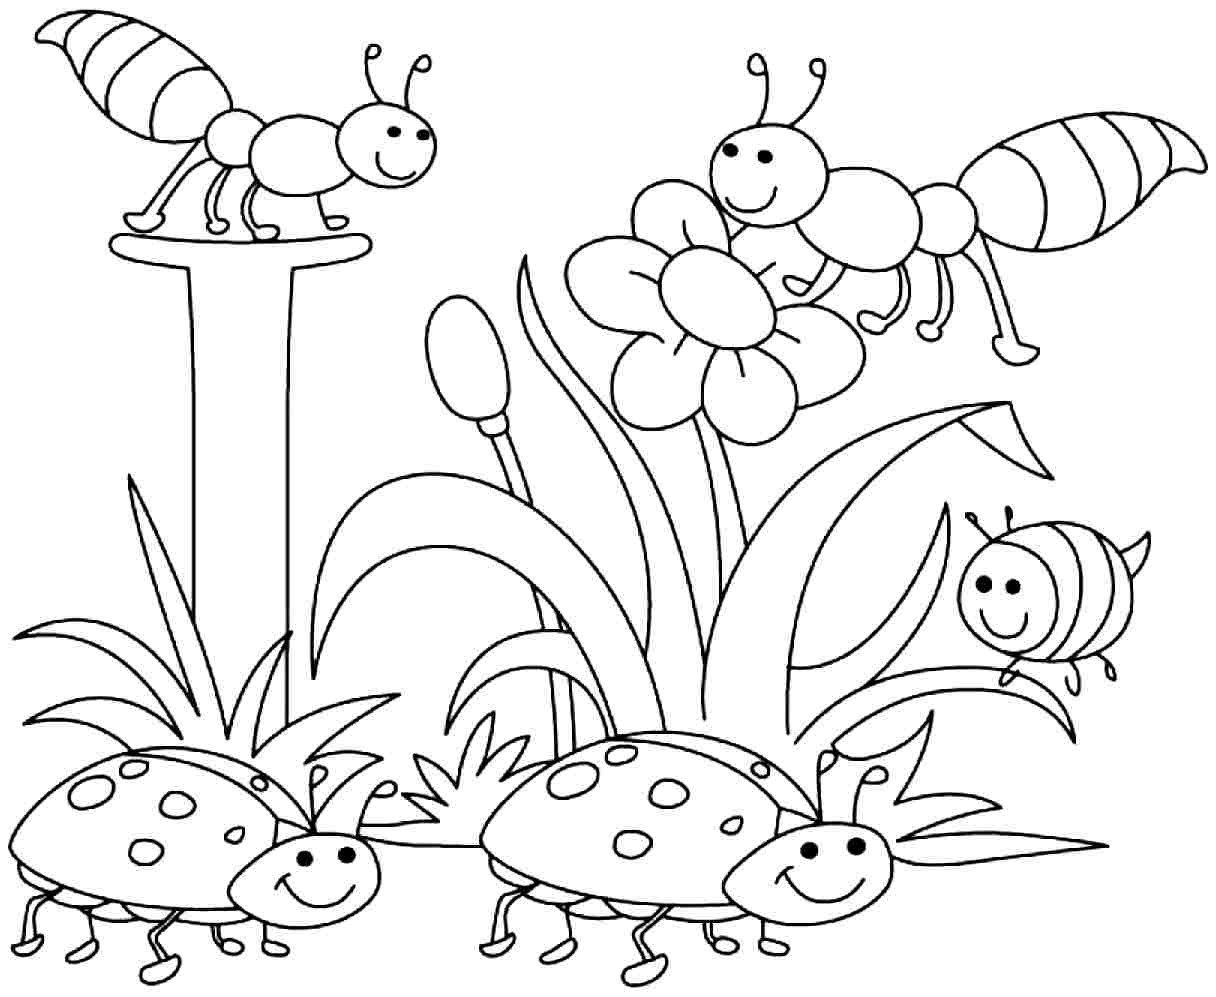 Spring Coloring Pages Free Printable  5 Best of Spring Season Coloring Pages Printable